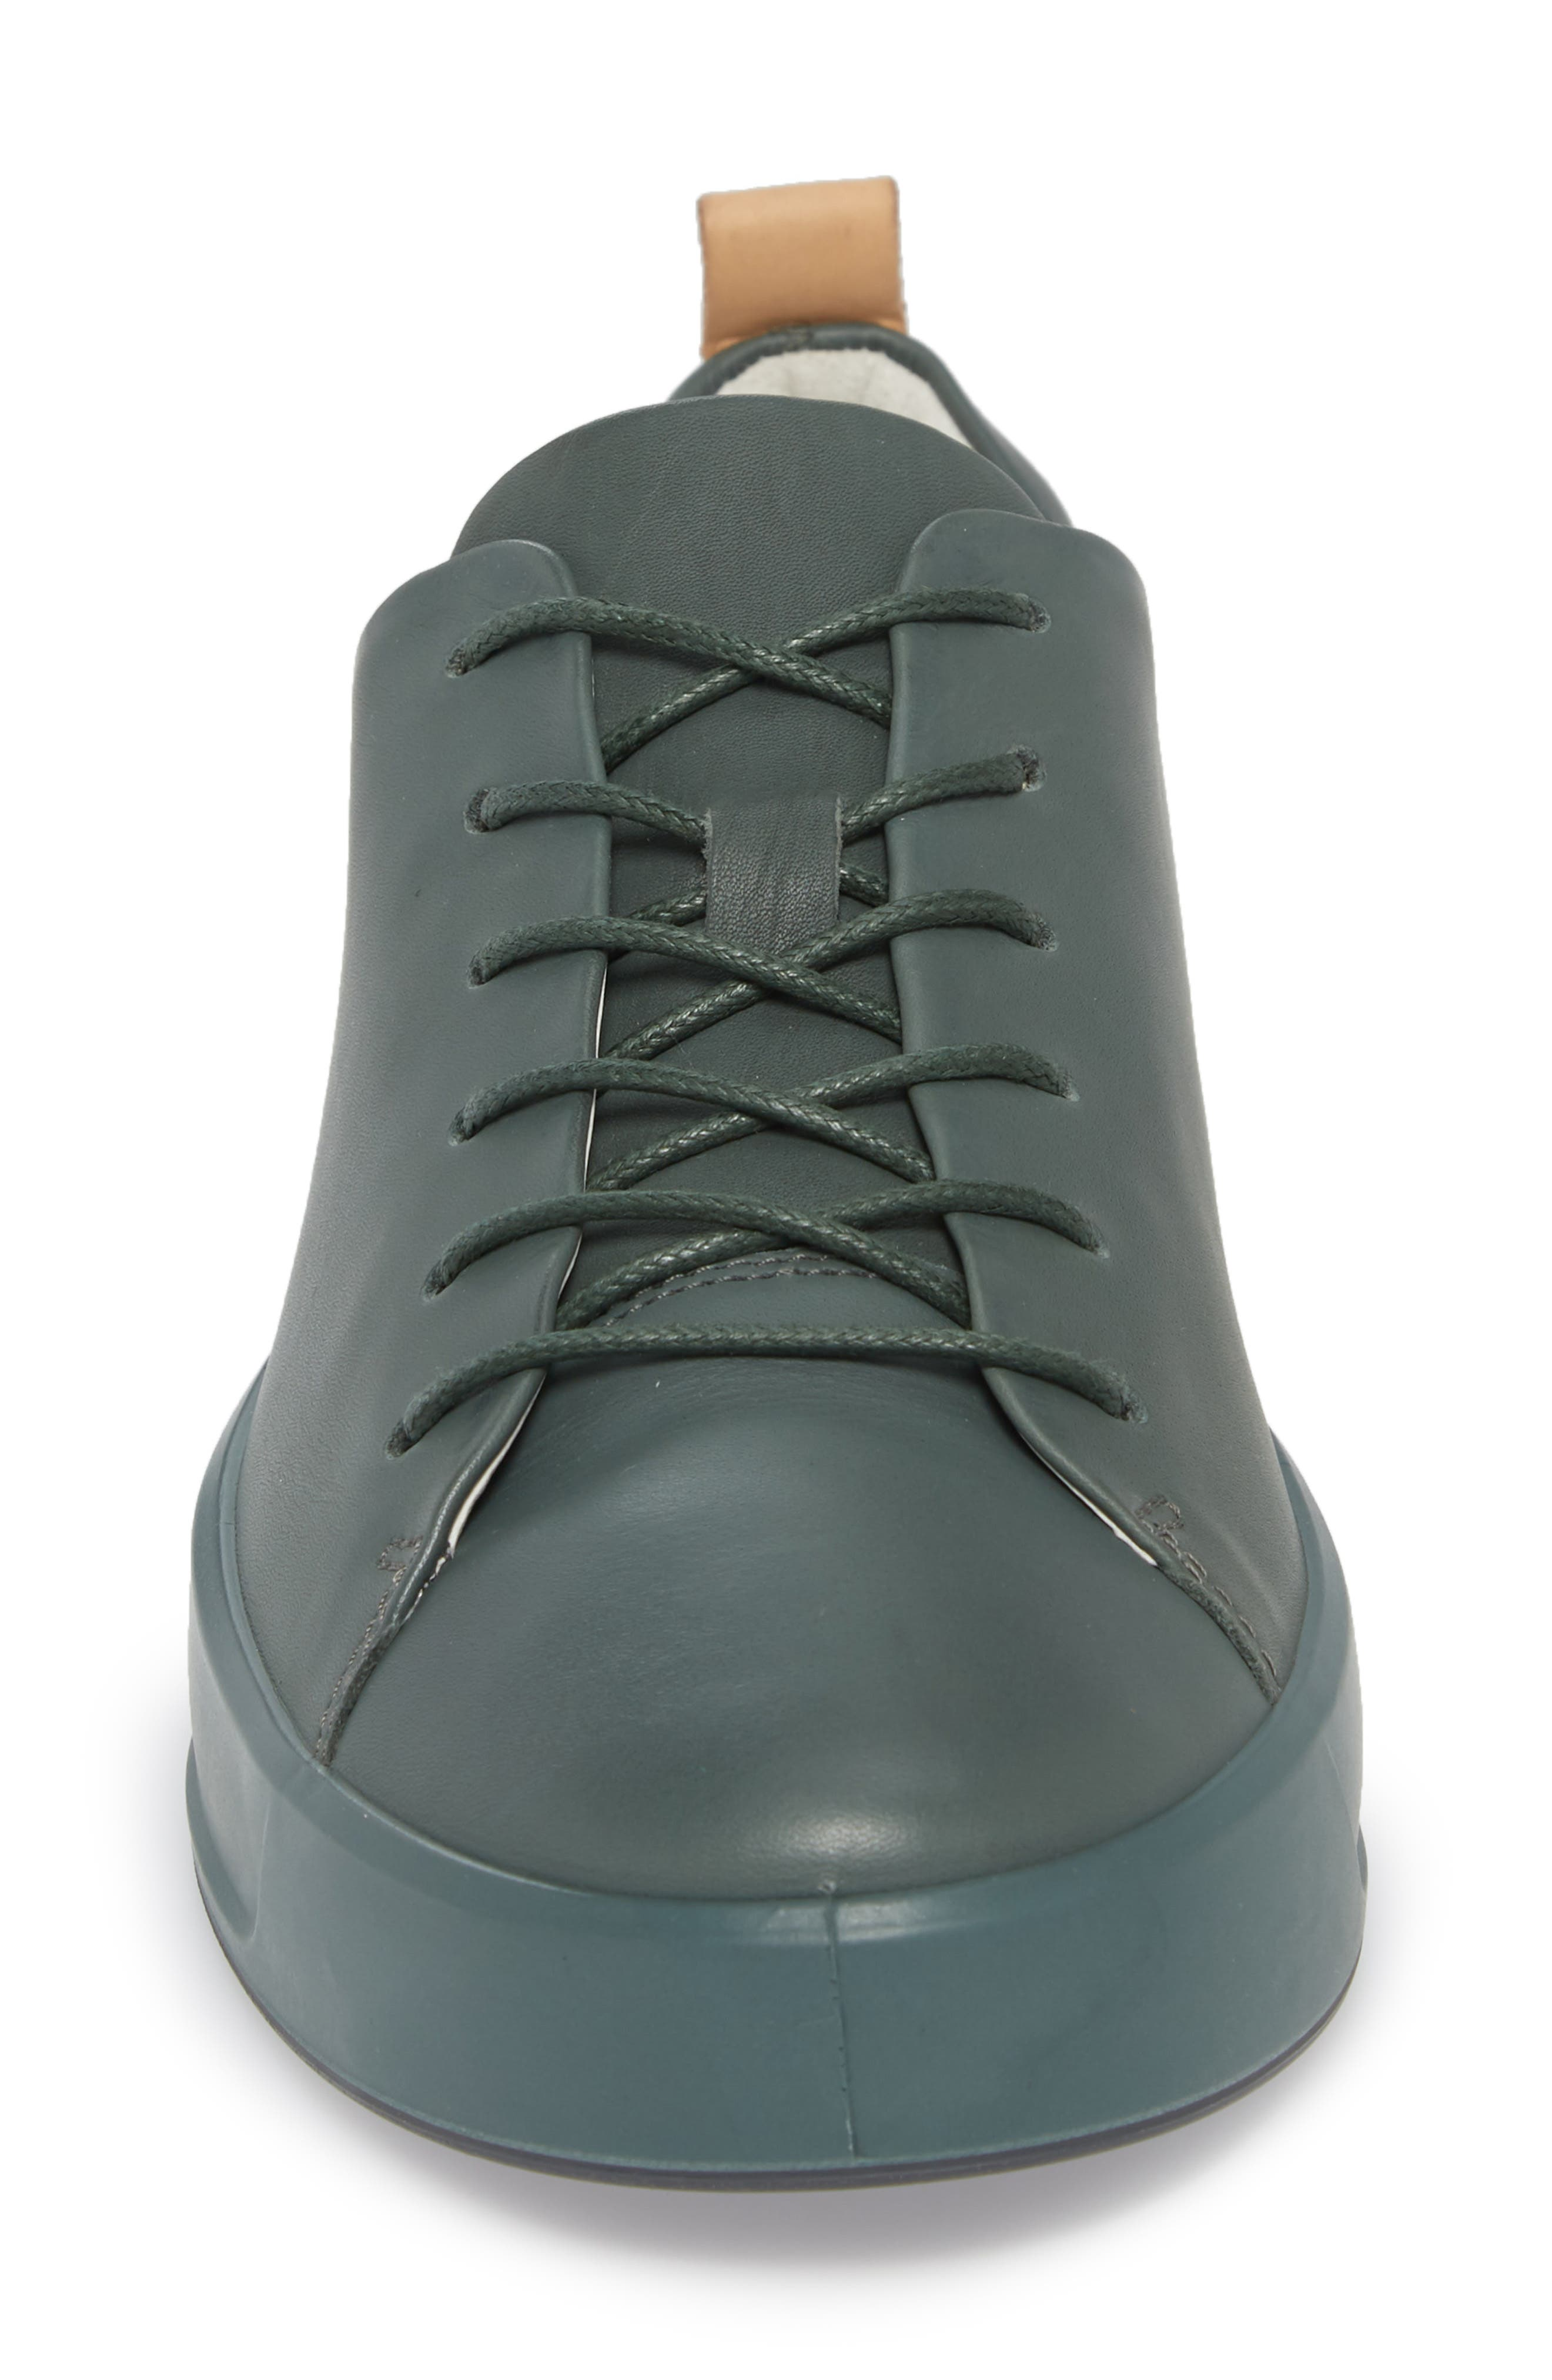 Soft 8 Low Top Sneaker,                             Alternate thumbnail 4, color,                             Military Sage Leather